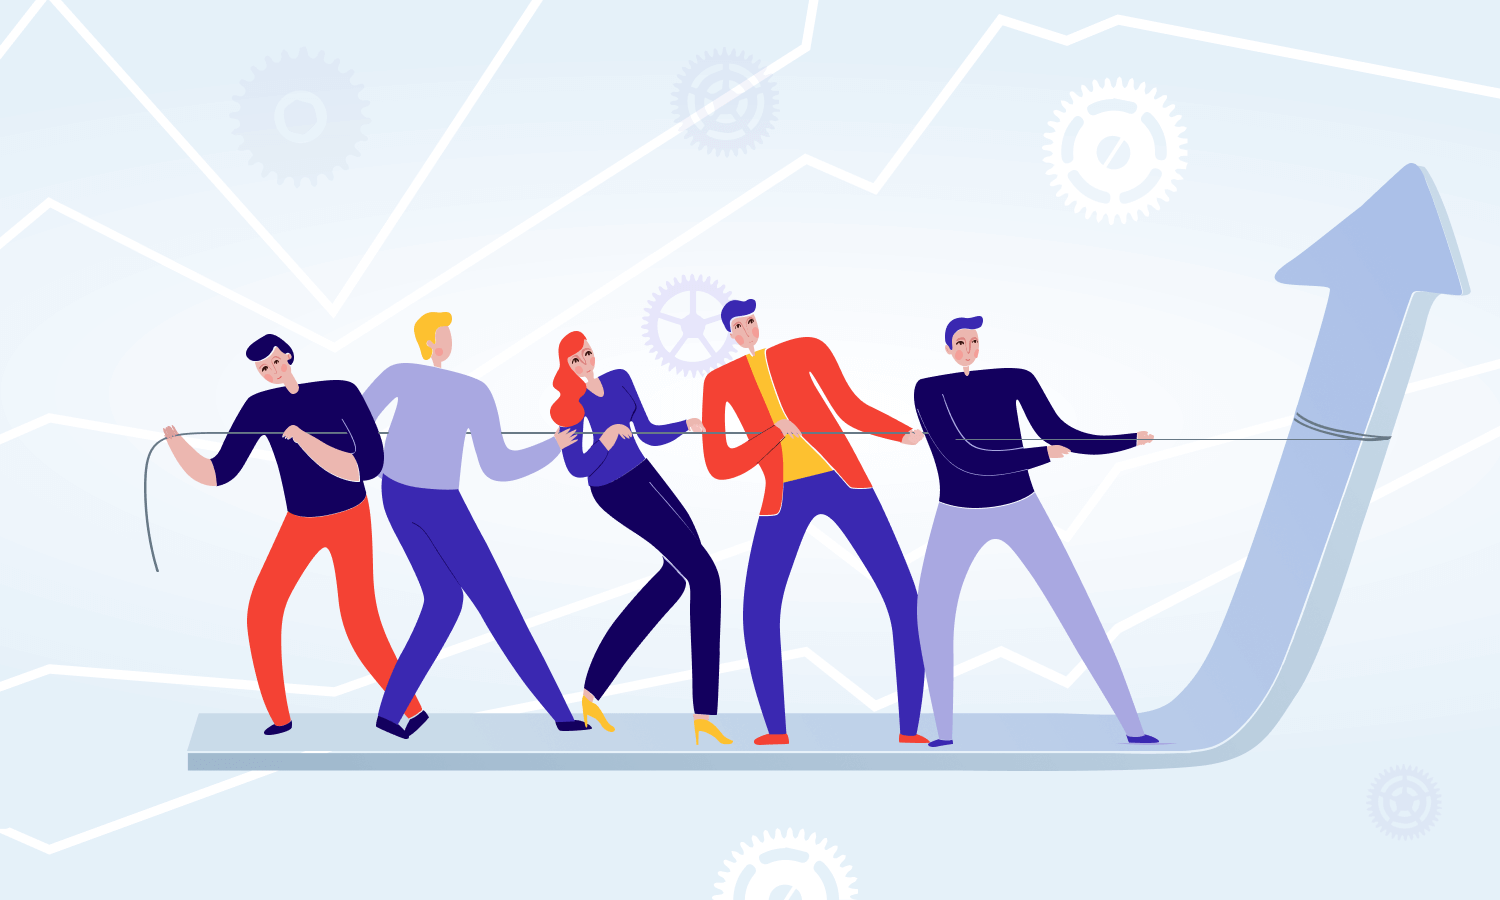 The most important role of team building